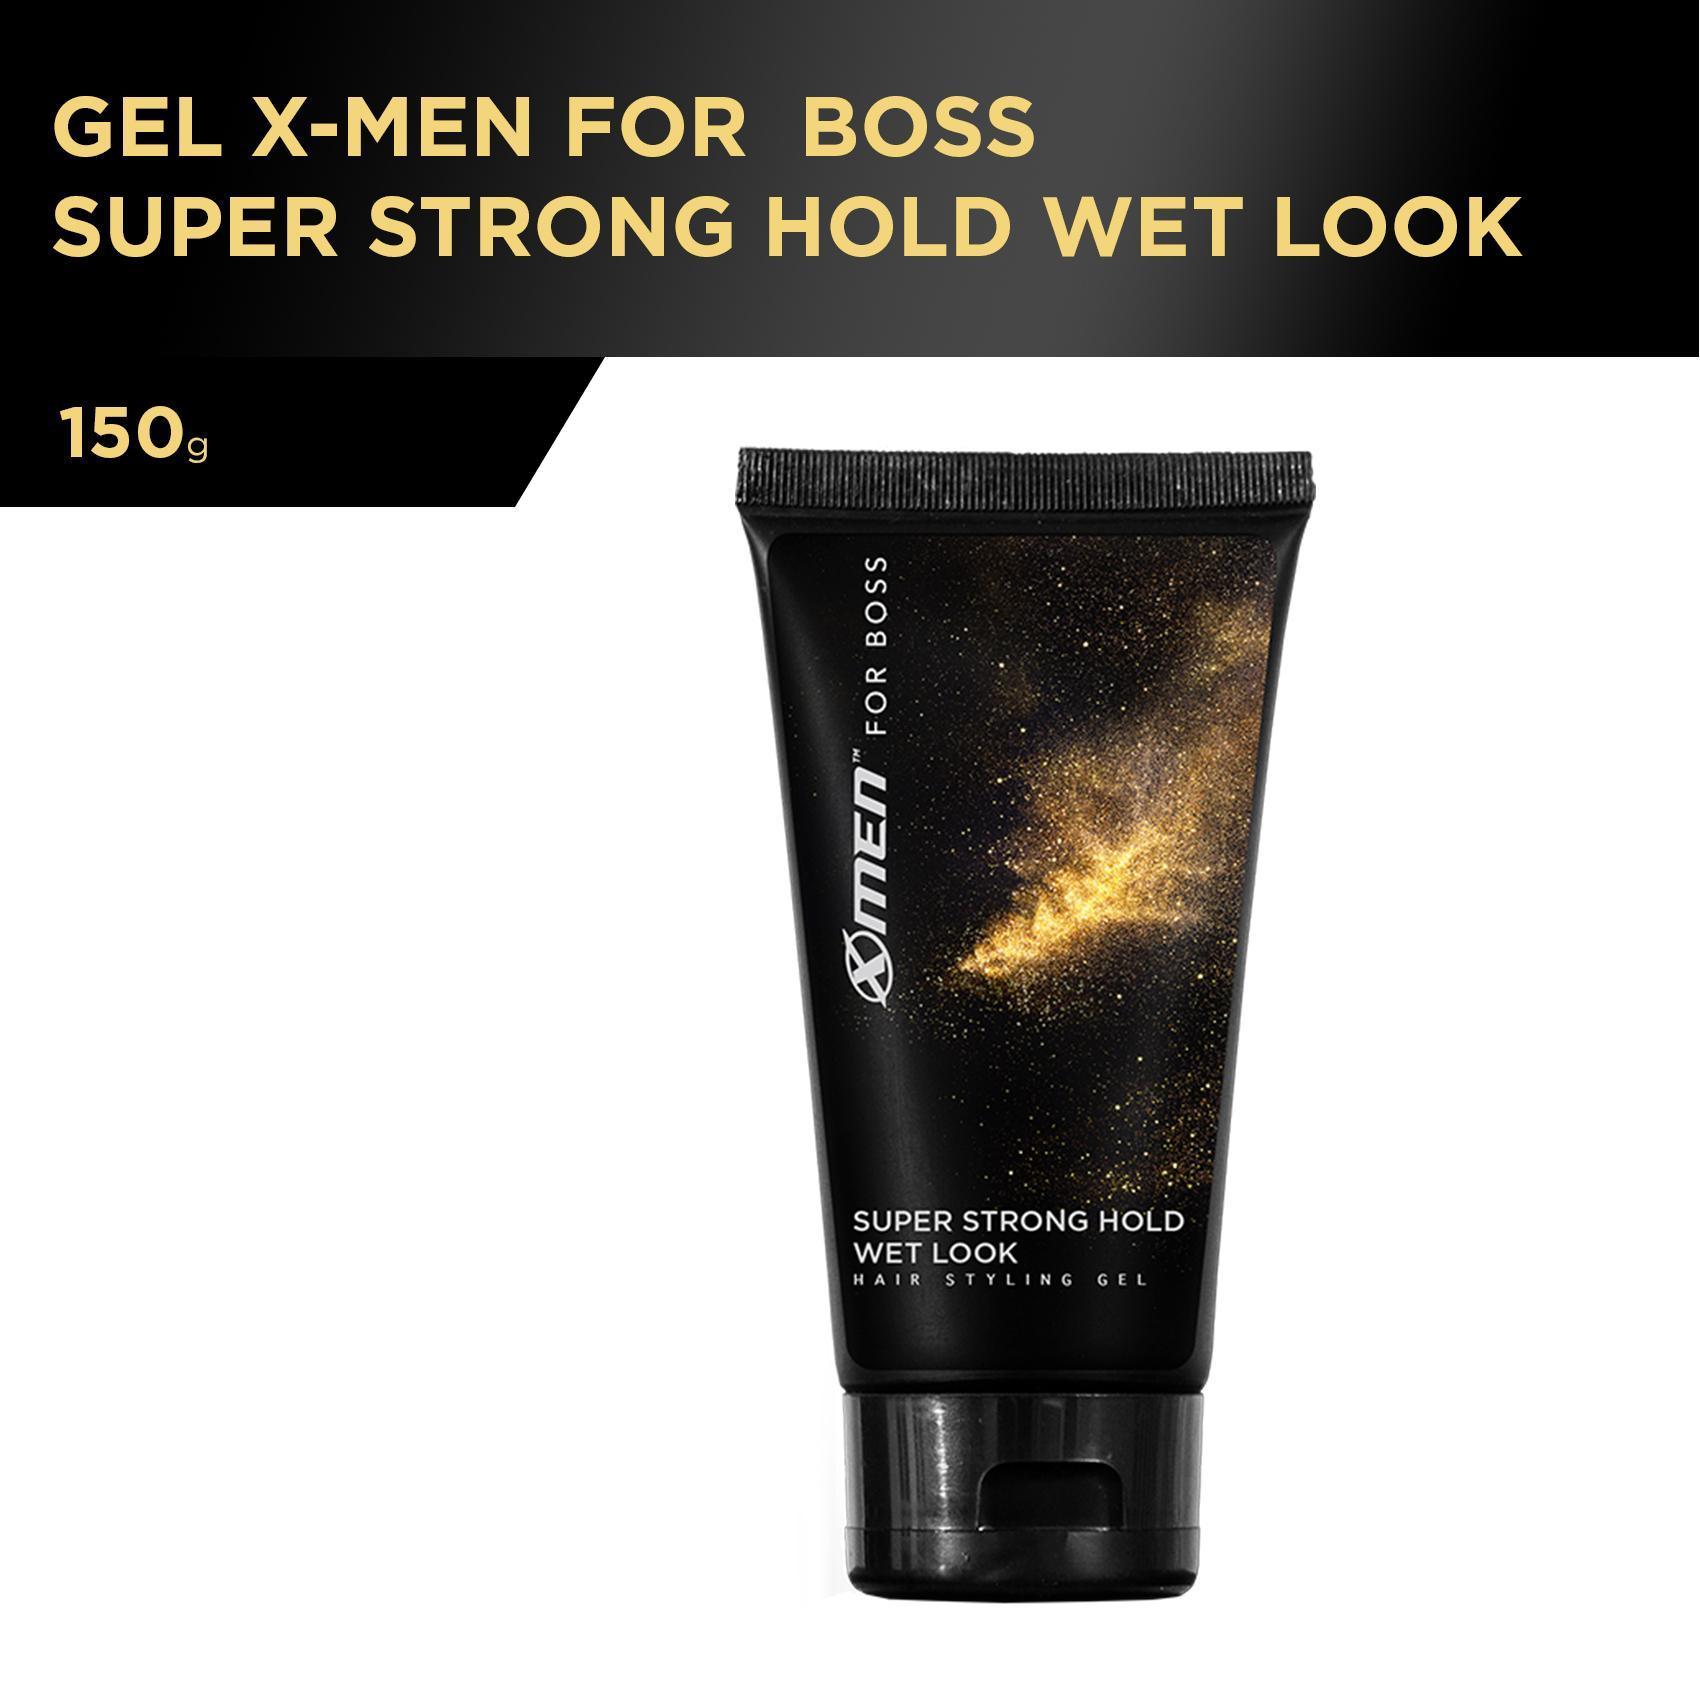 Gel Vuốt Tóc XMen For Boss Ss Hold Natural Look 150G giá rẻ